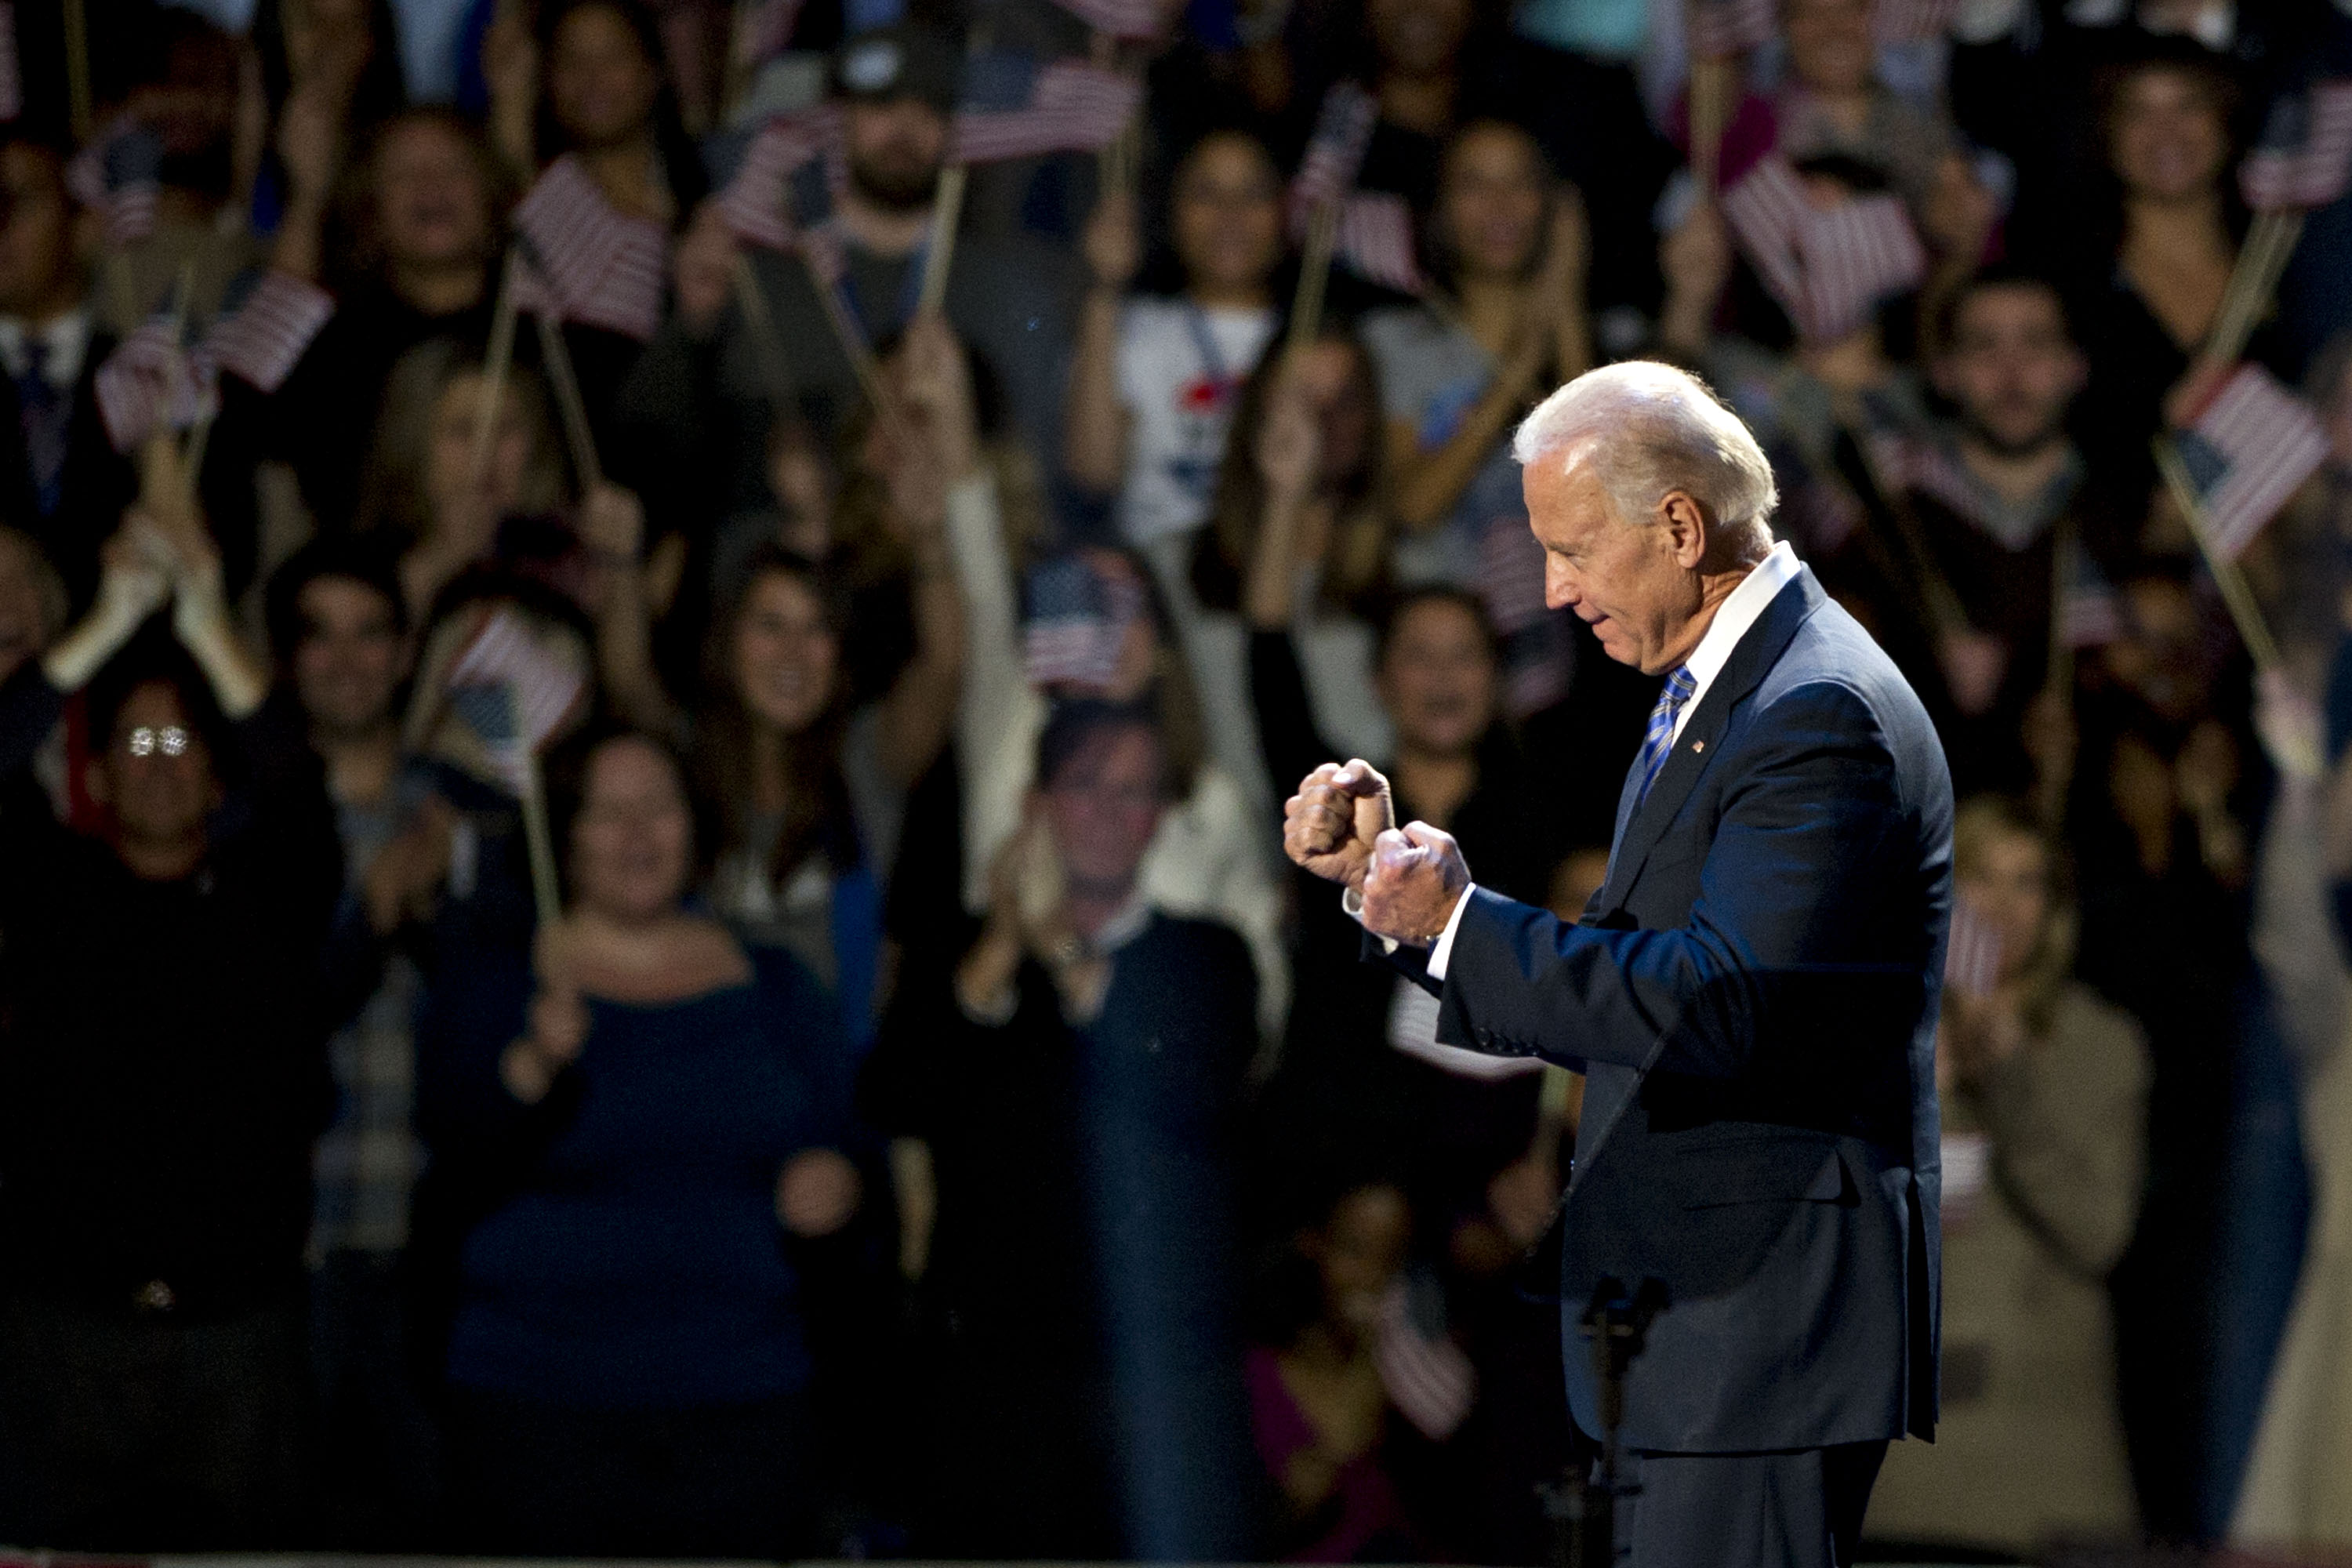 Vice President Joe Biden during an election night rally in Chicago, on Nov. 7, 2012.